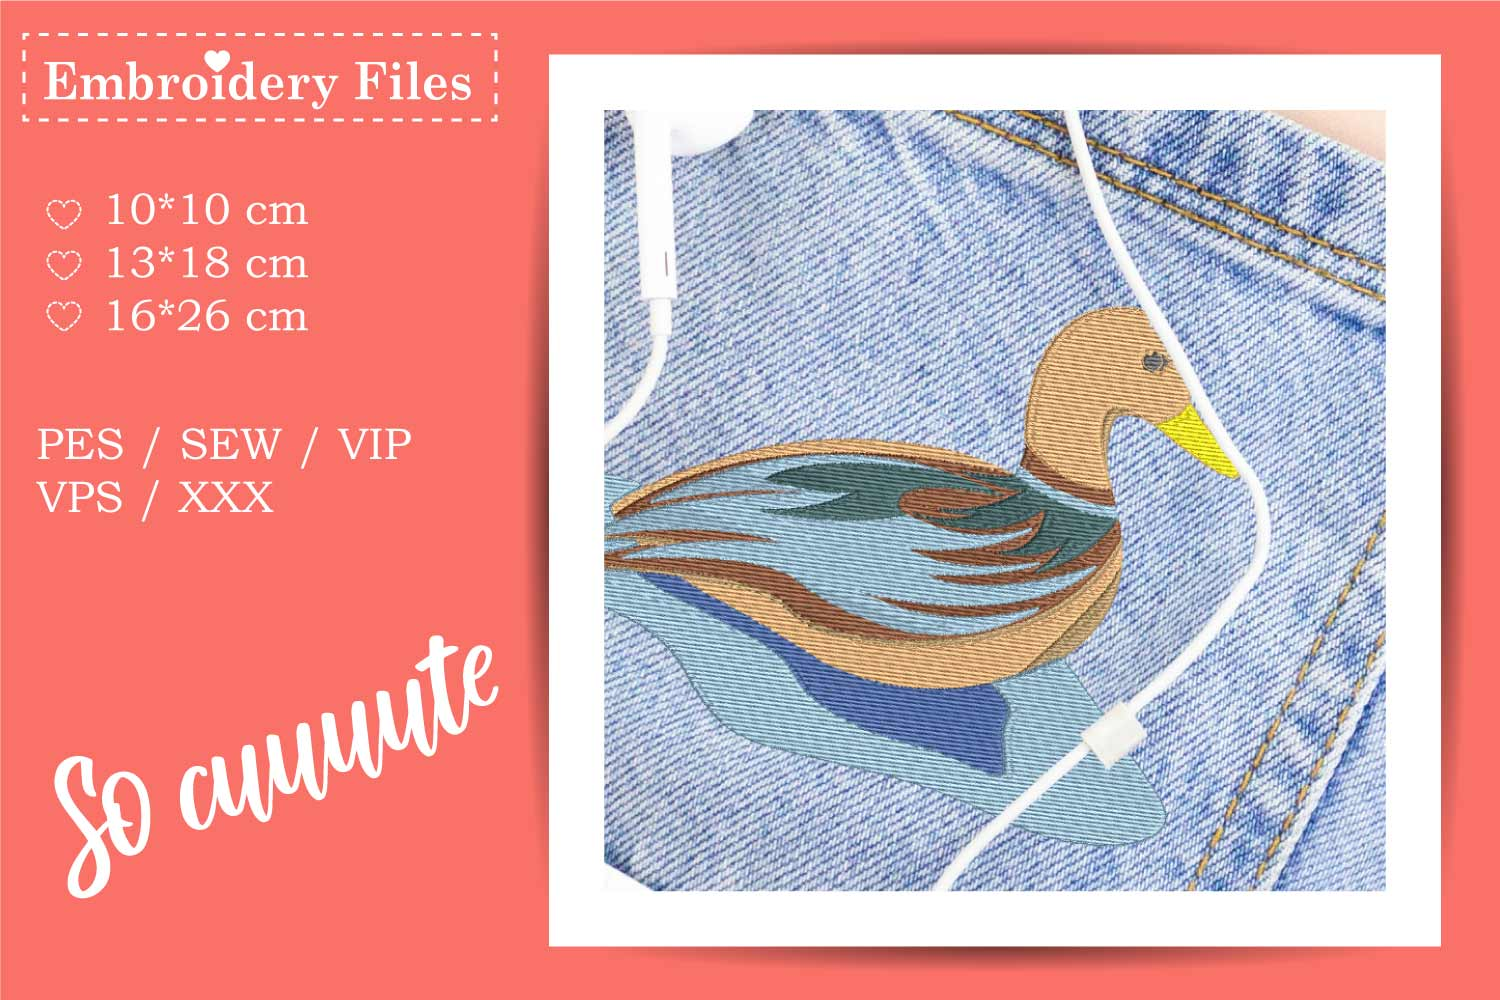 A cute Duck - Embroidery File for Beginners example image 3